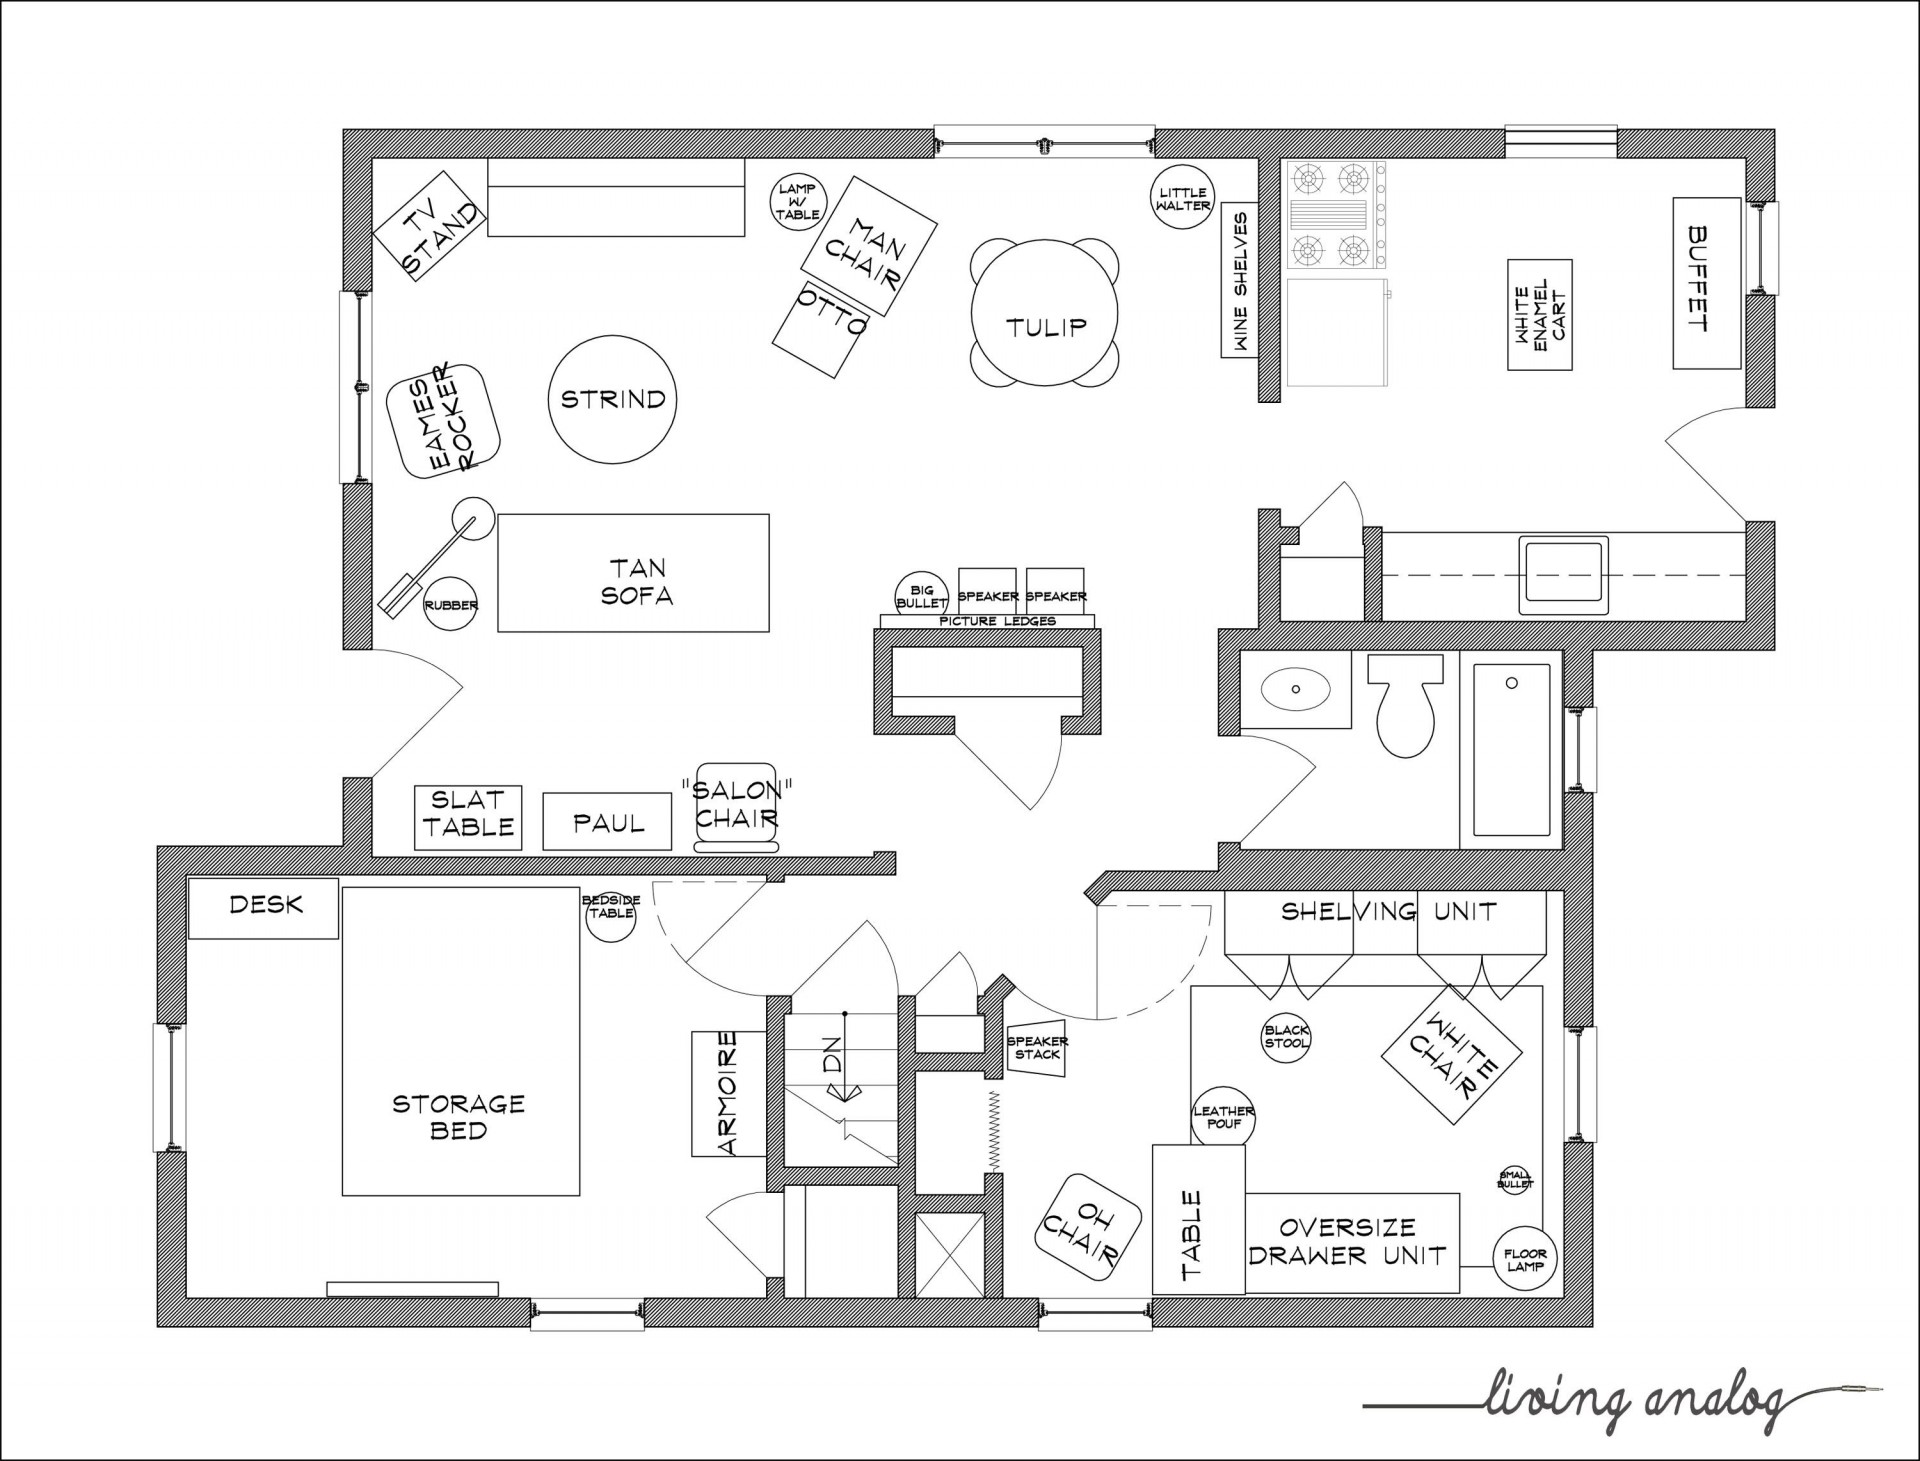 007 Stupendou Free Floor Plan Template Design  Excel Home House Sample1920